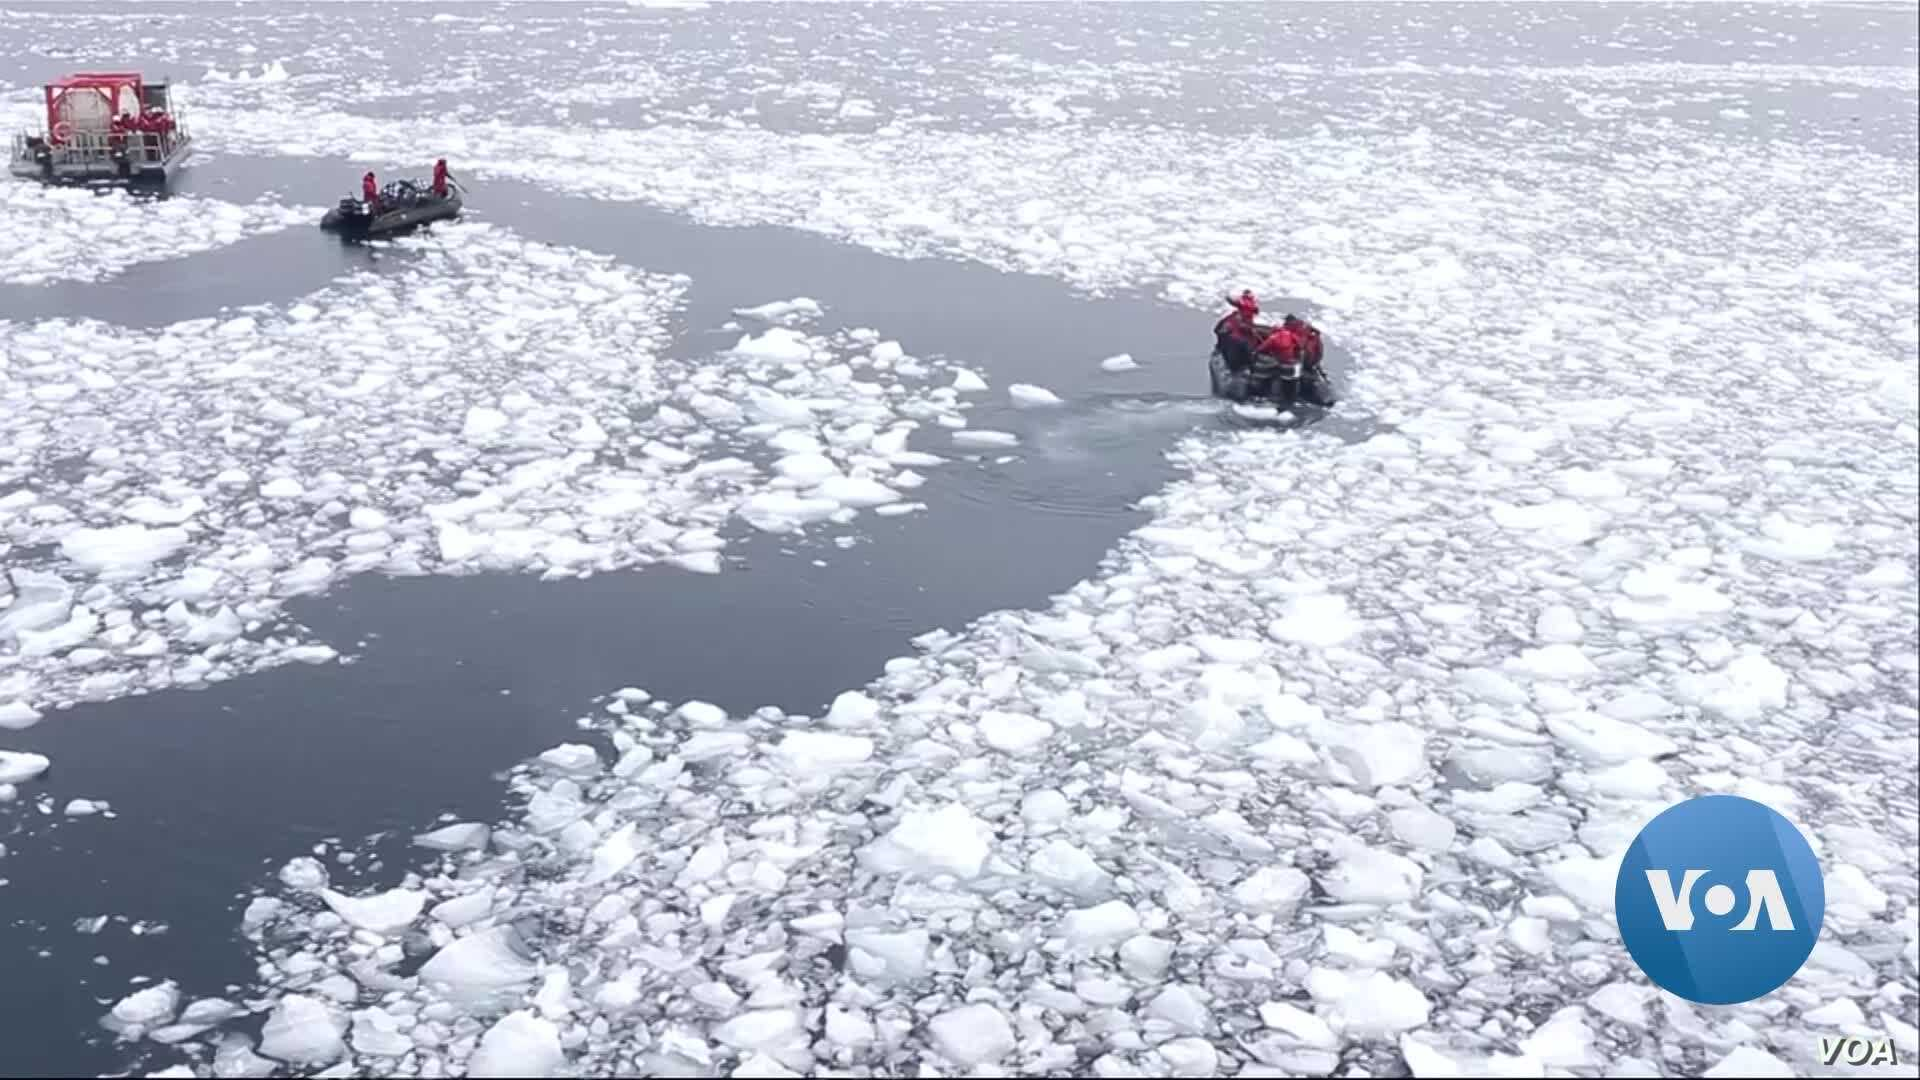 Antarctic Sea Ice Plunges from Record High to Record Lows